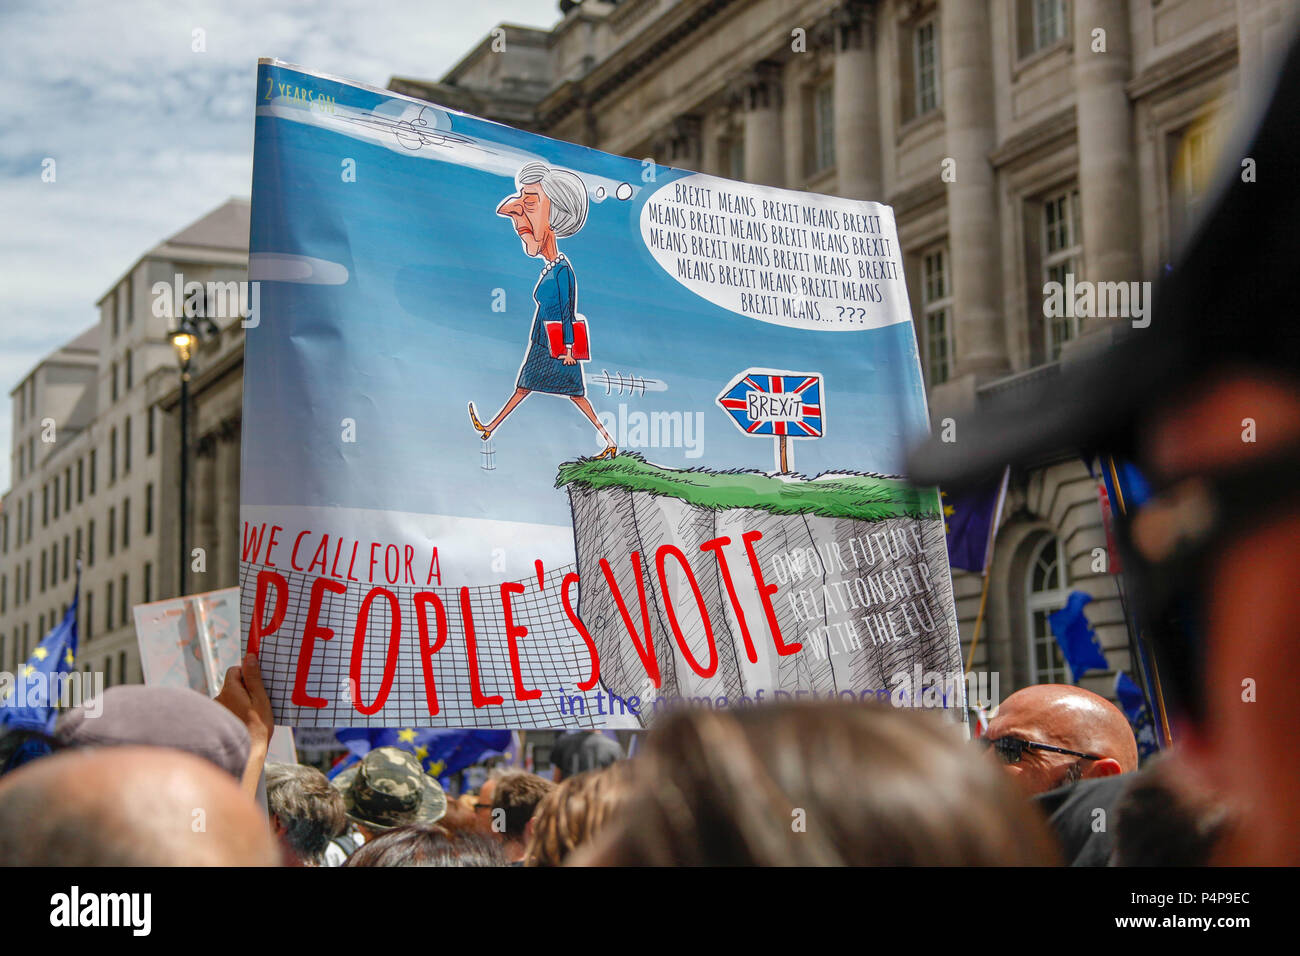 London, UK. 23rd June 2018. Poster at the People's Vote March Credit: Alex Cavendish/Alamy Live News - Stock Image